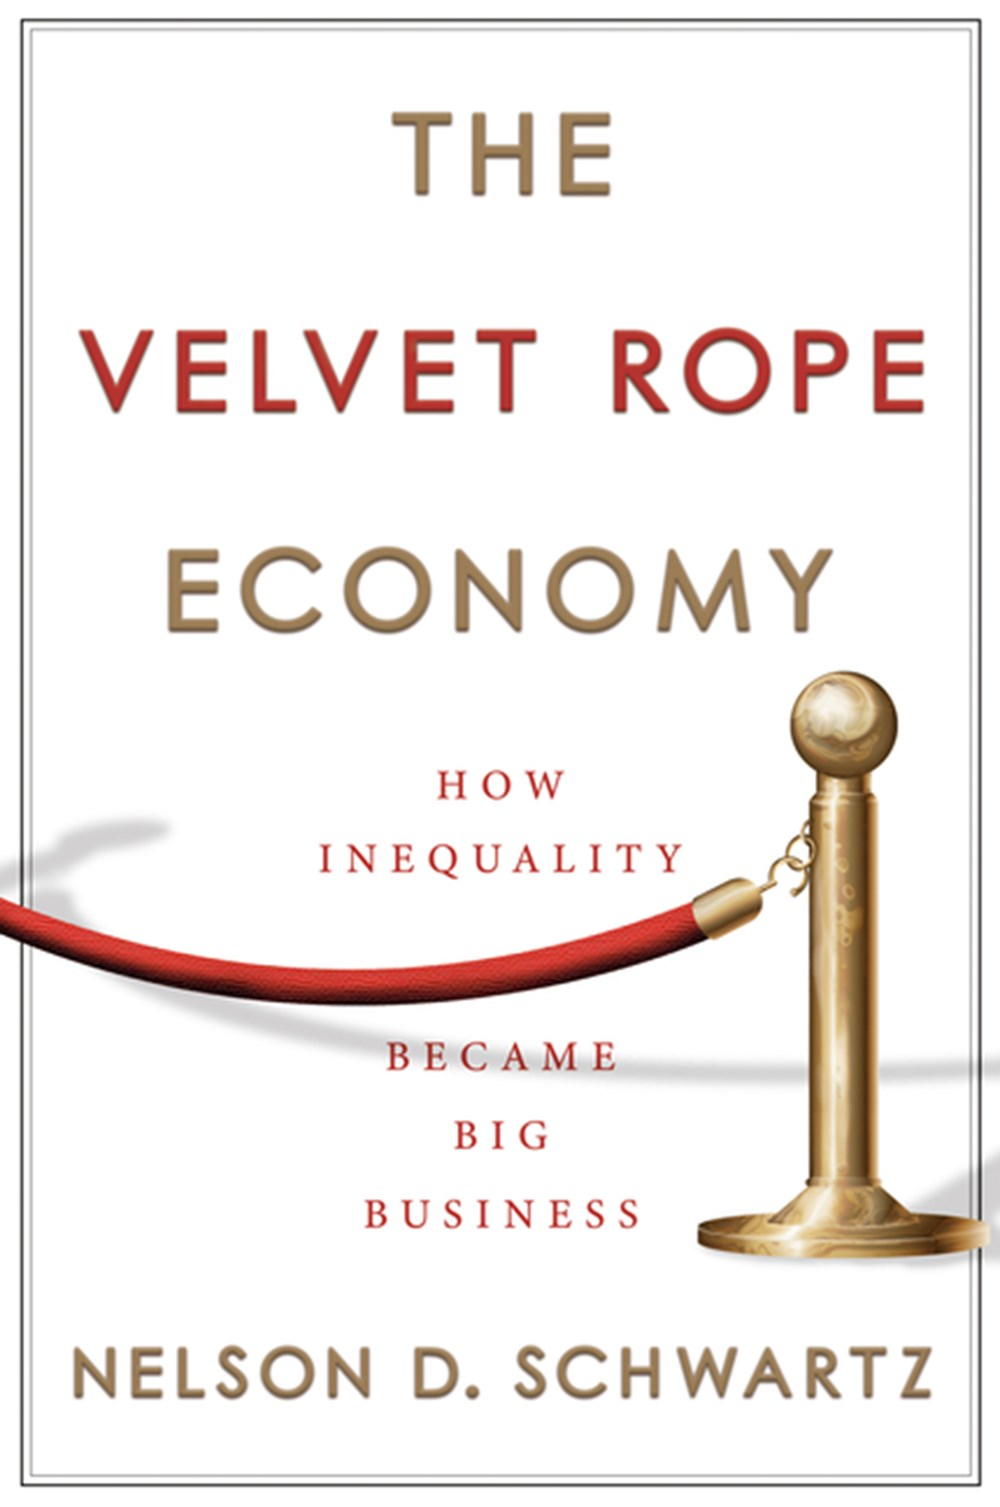 Velvet Rope Economy How Inequality Became Big Business